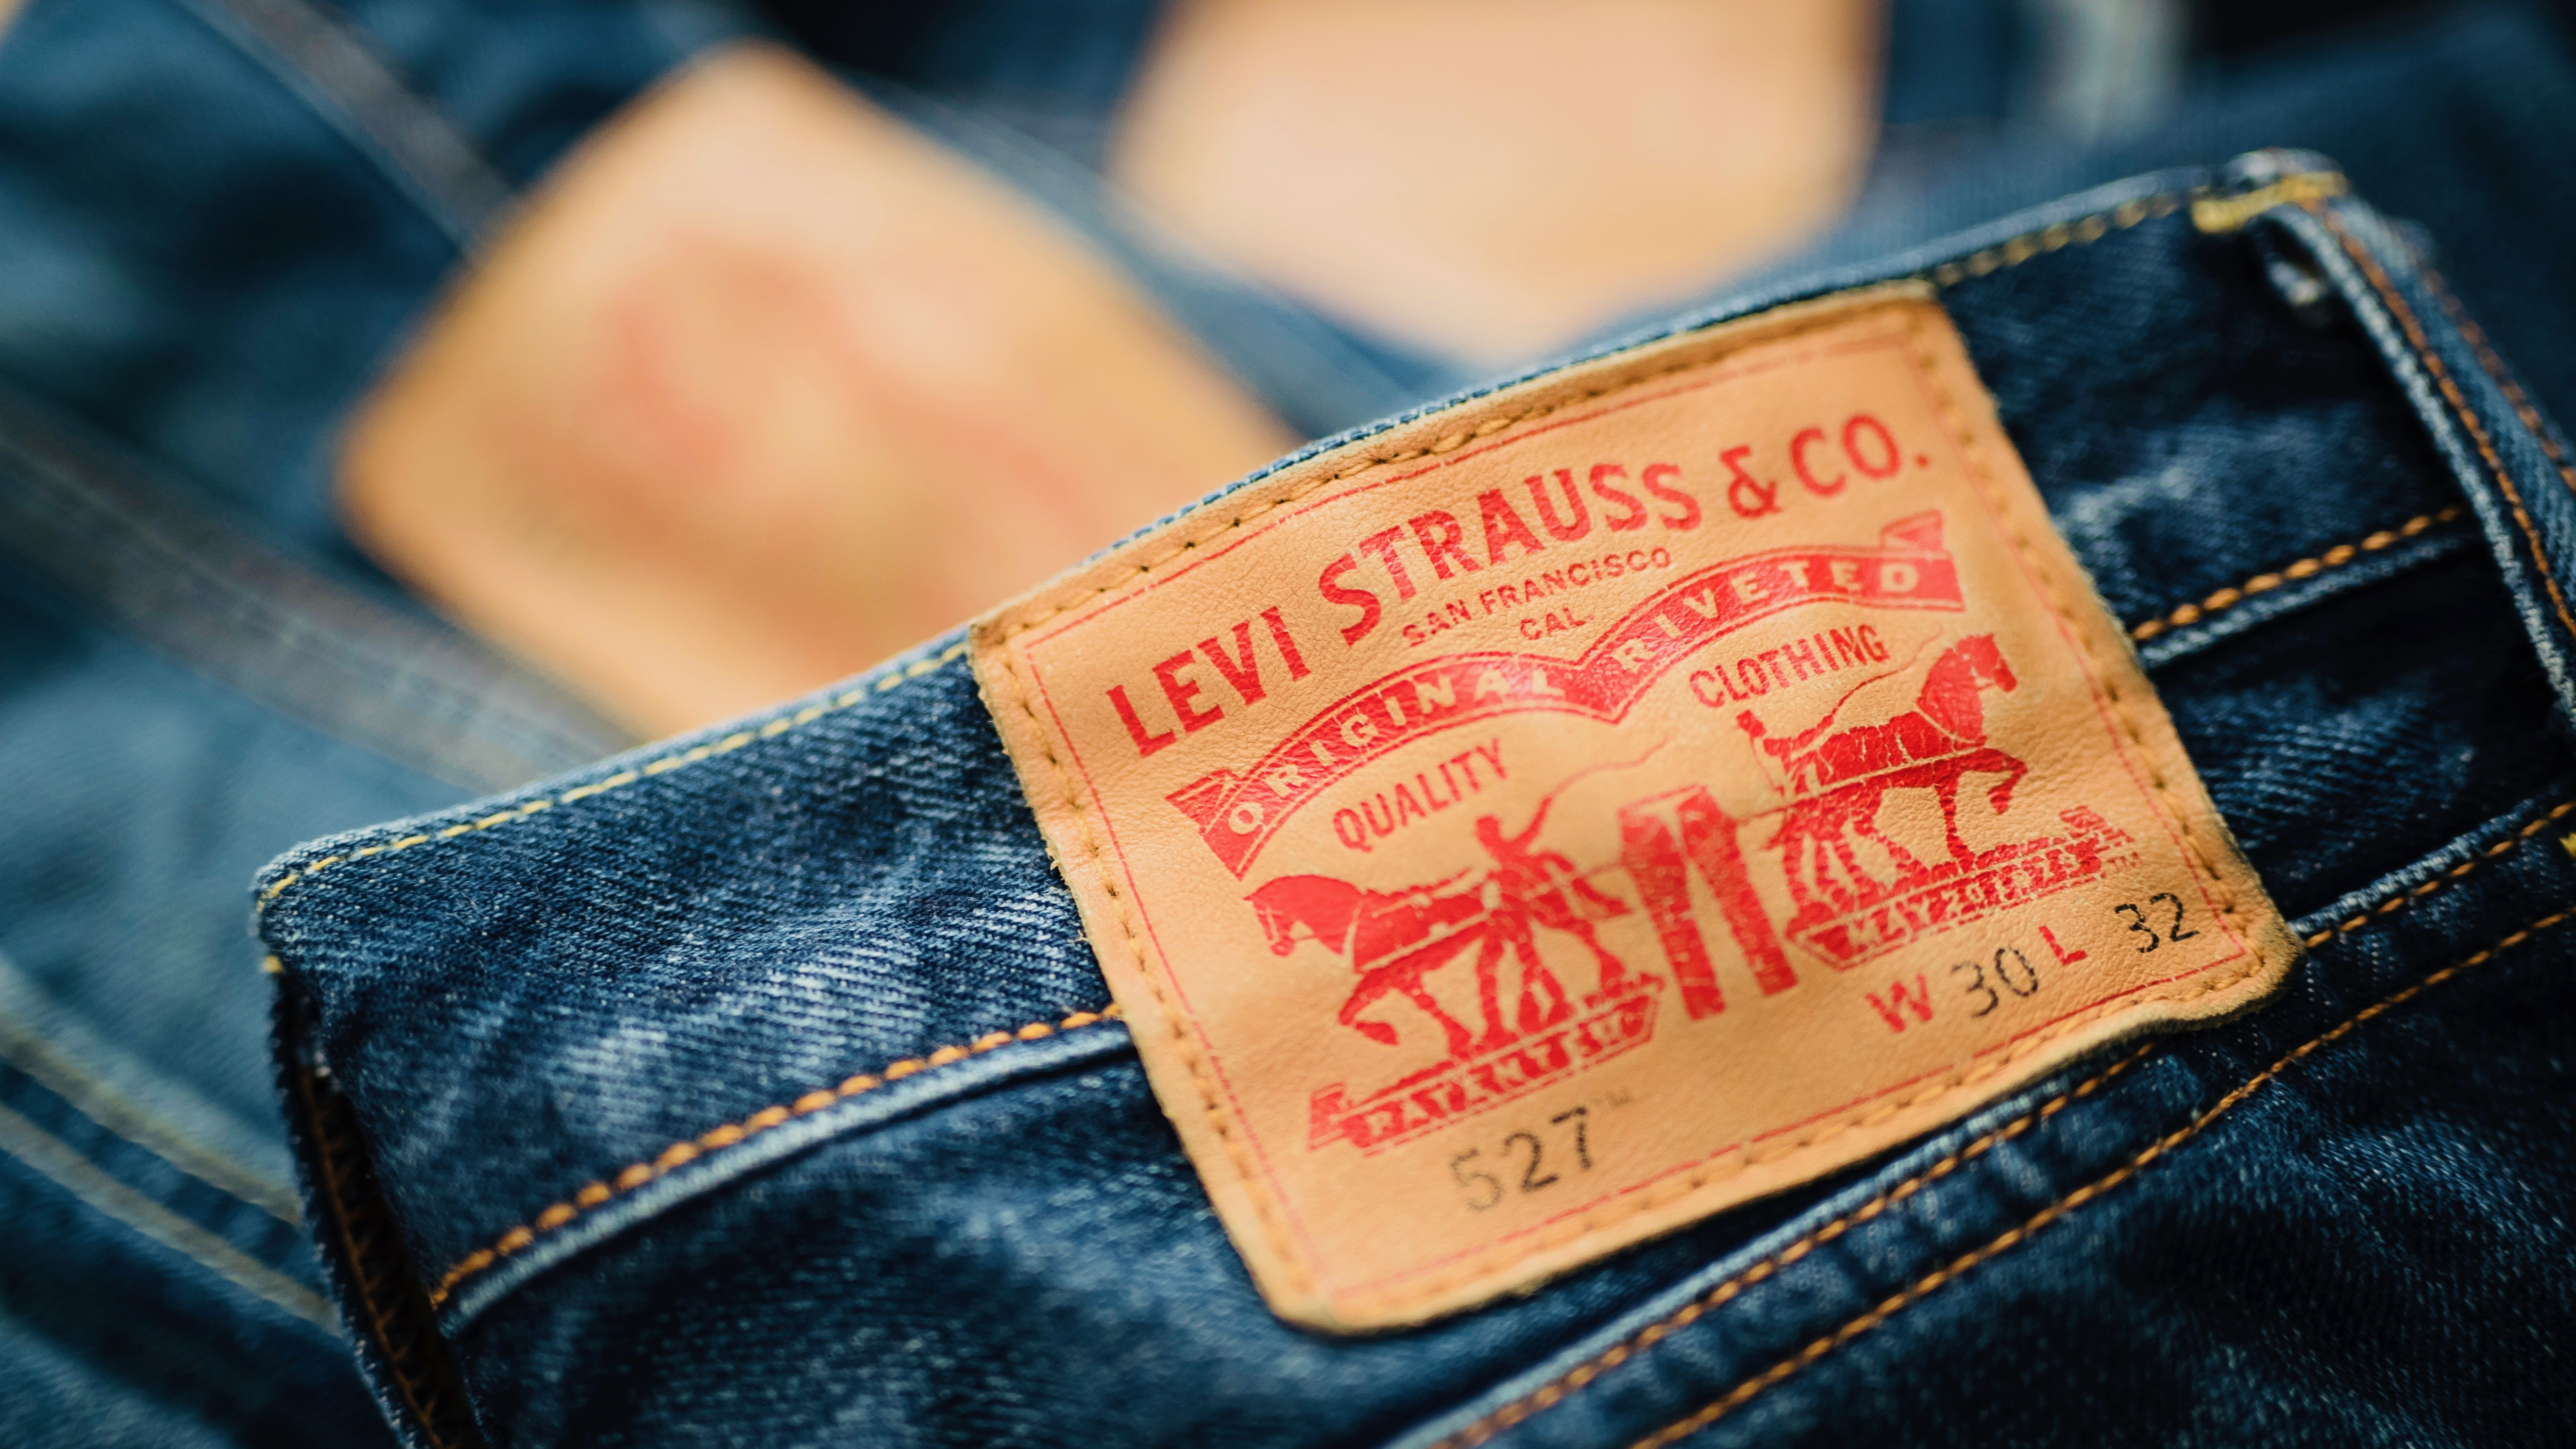 How do you pronounce 'Levis' the clothing brand?